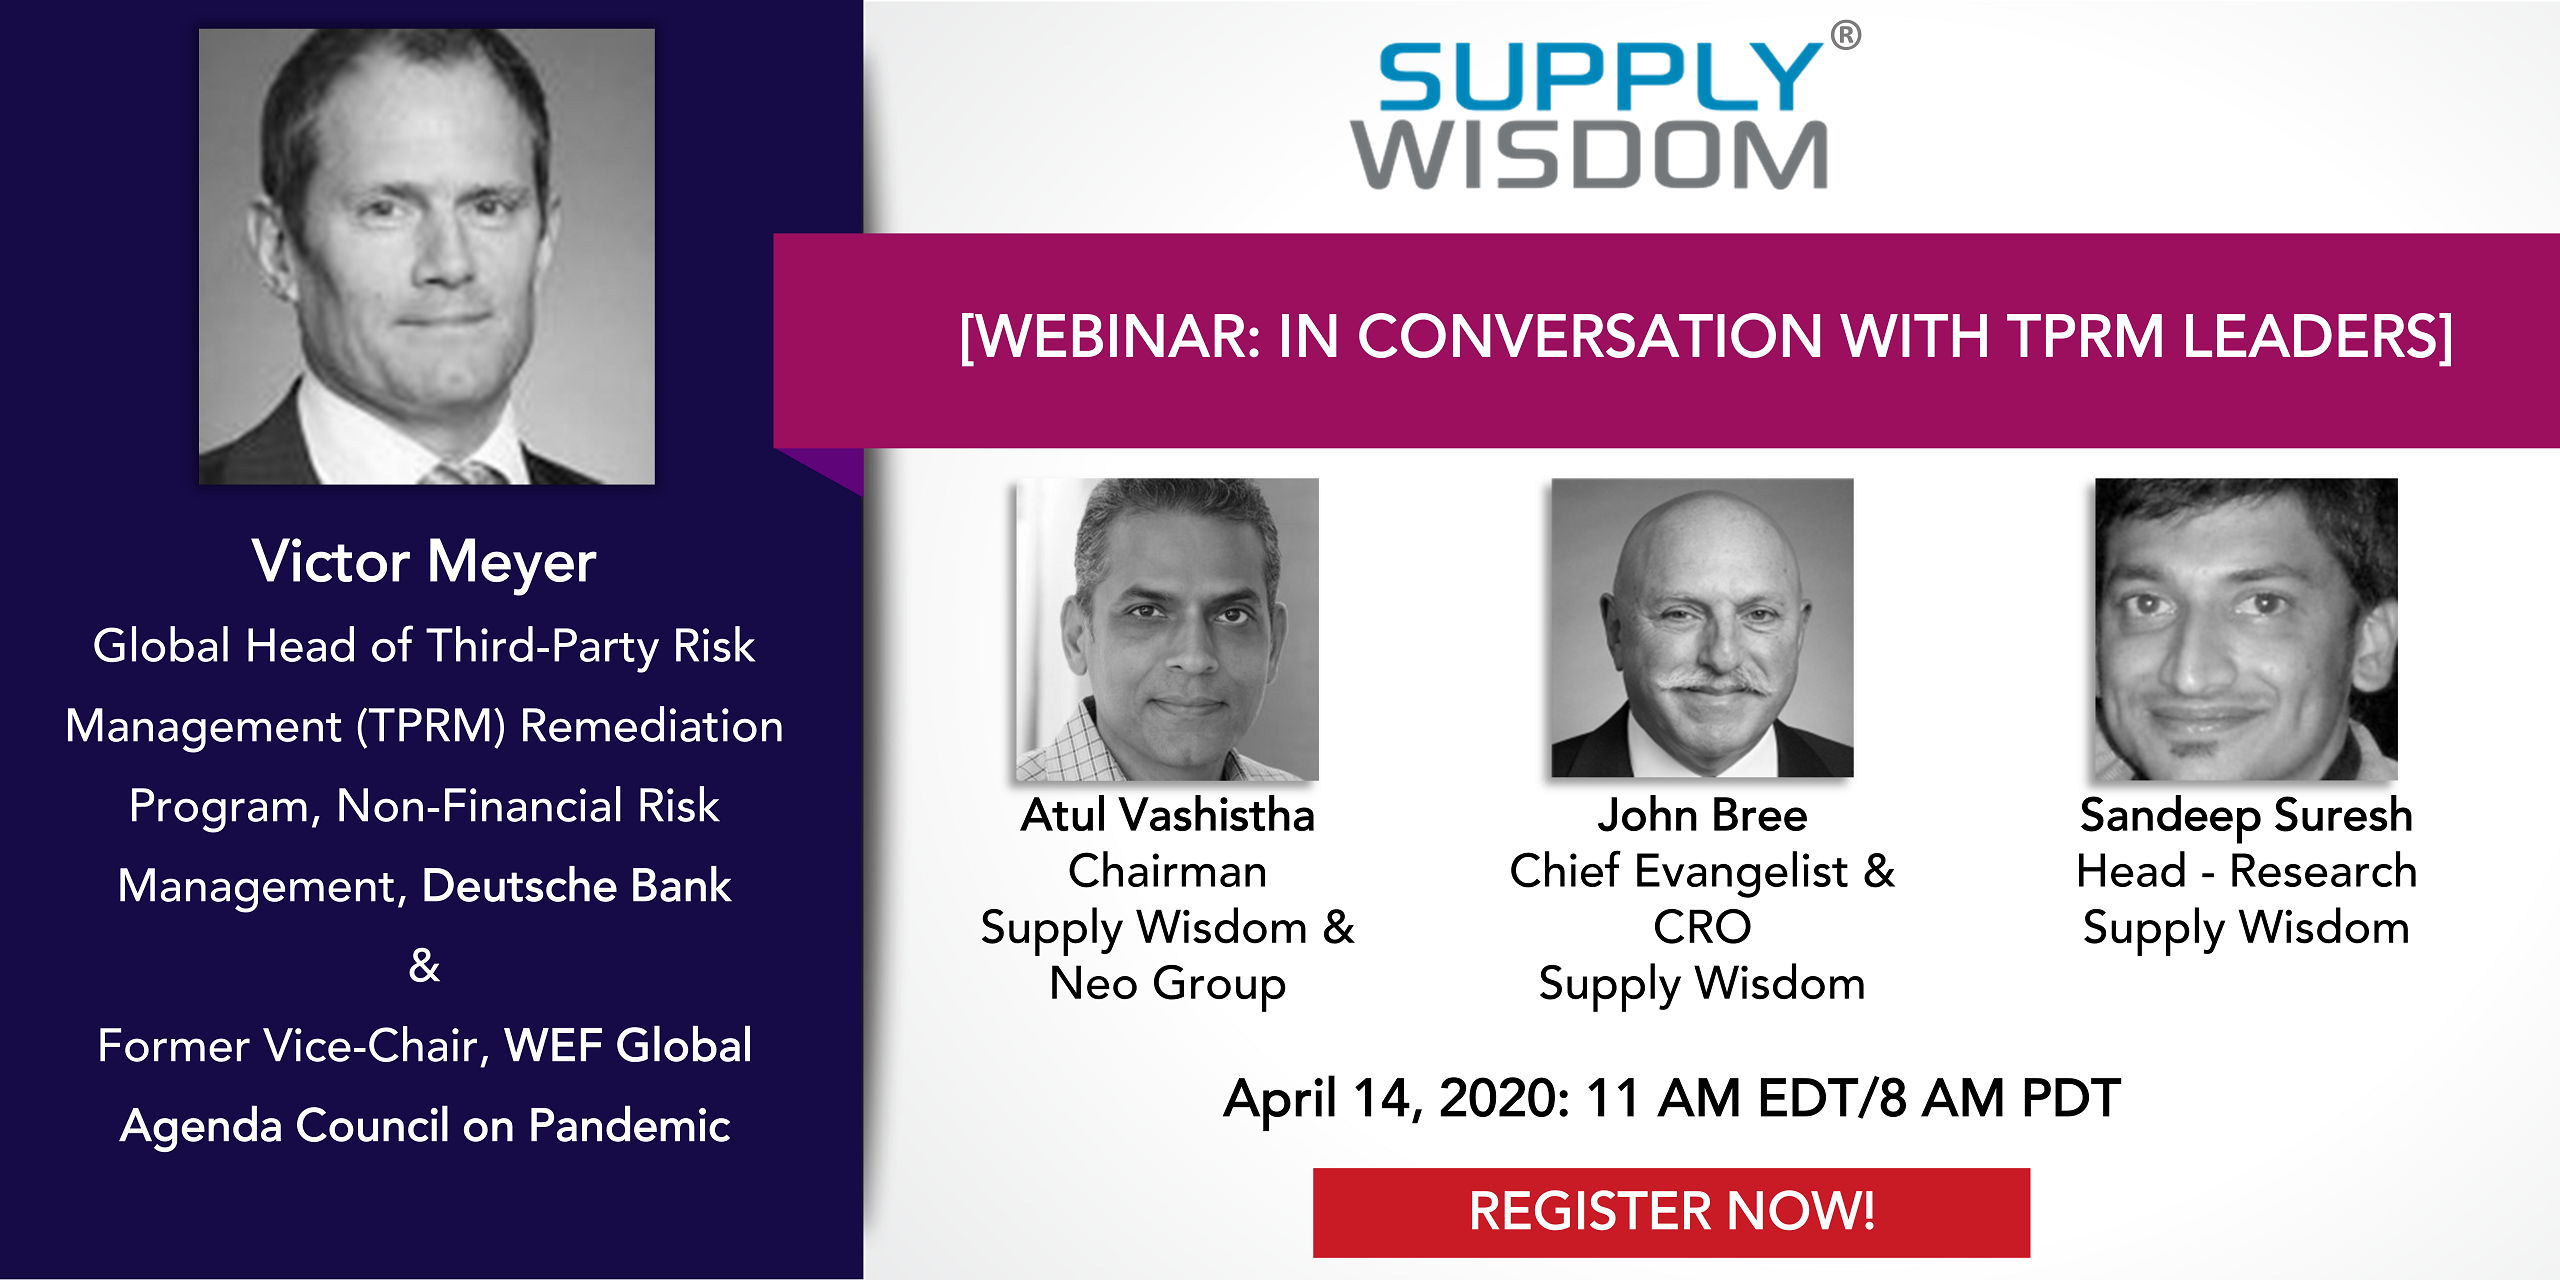 Supply Wisdom Covid19 Webinar with TPRM Leaders